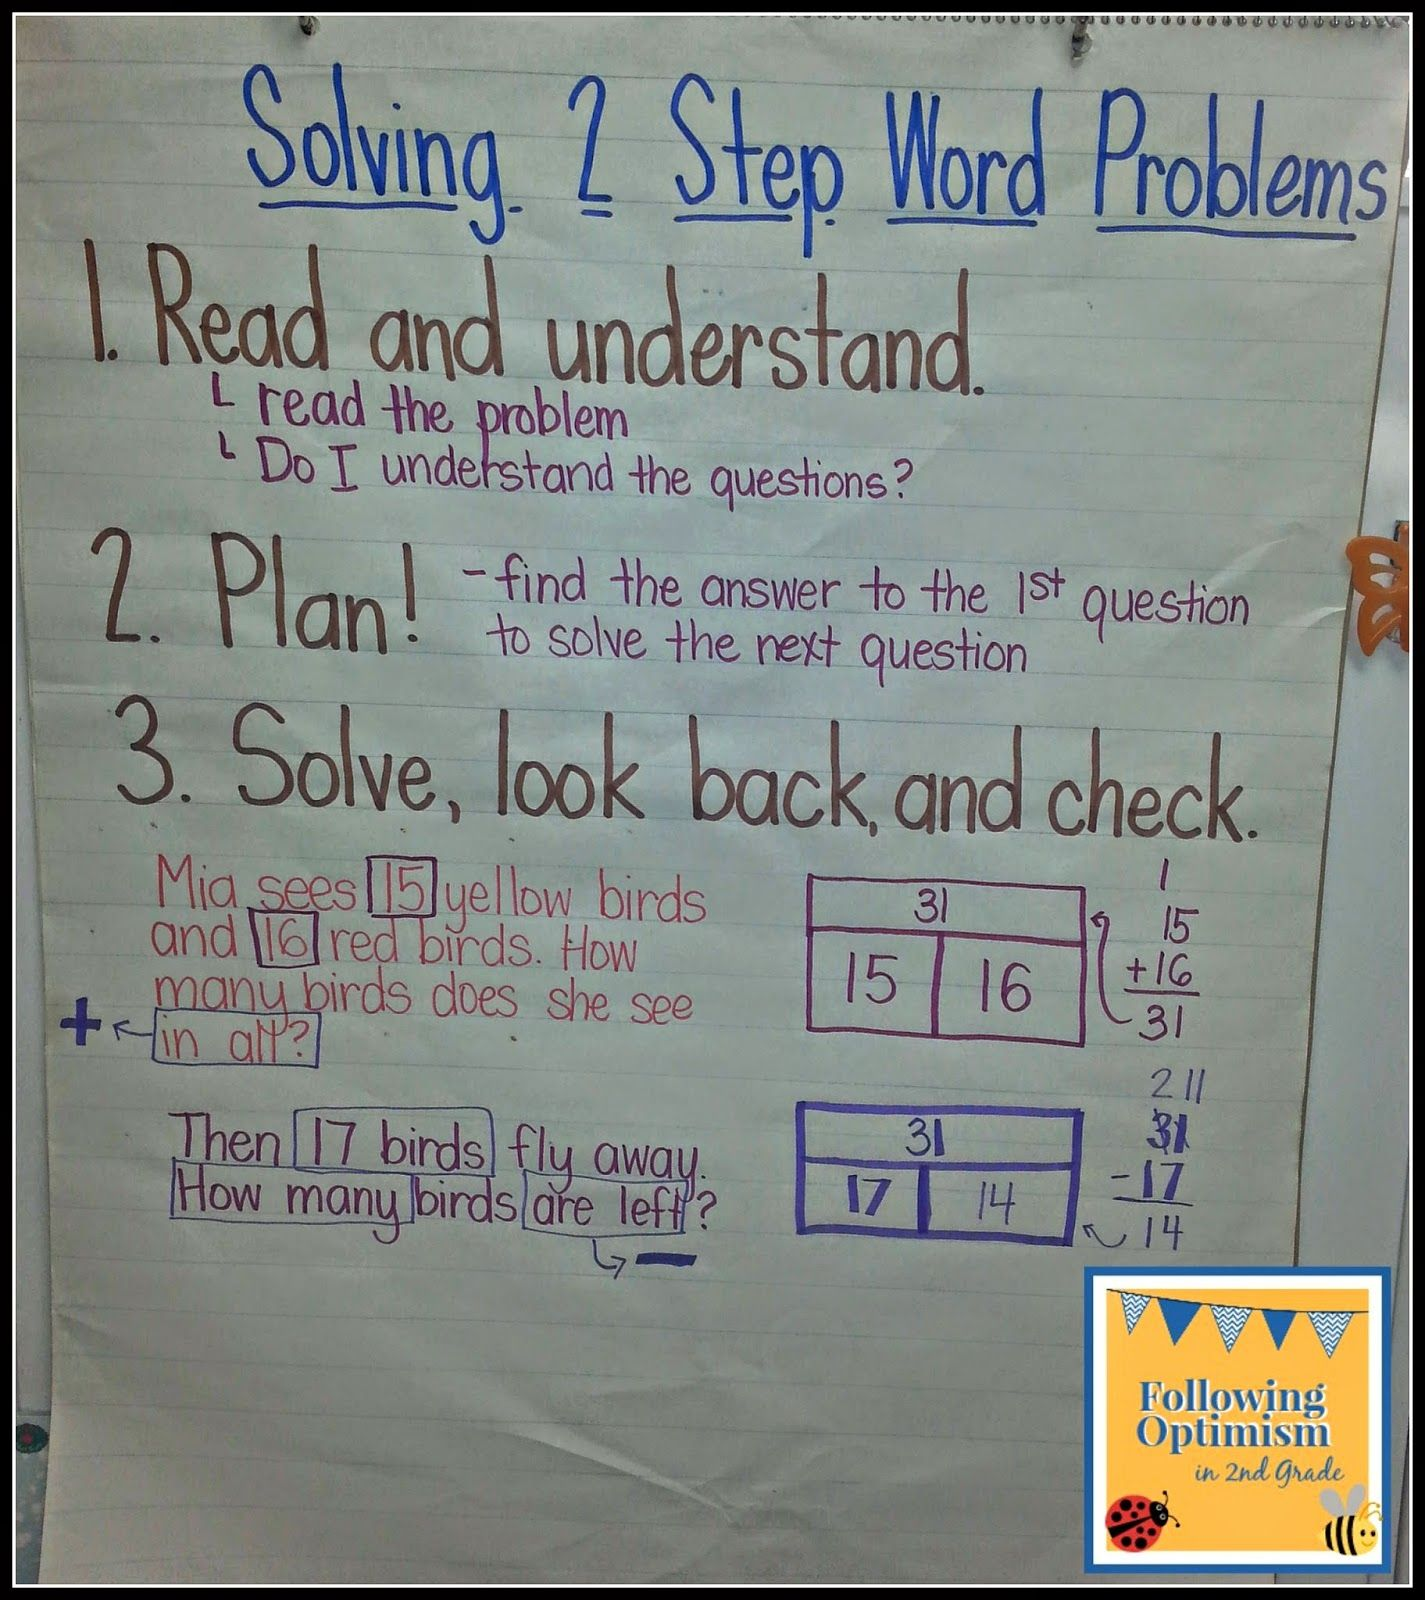 Two Step Word Problems Following Optimism In 2nd Grade